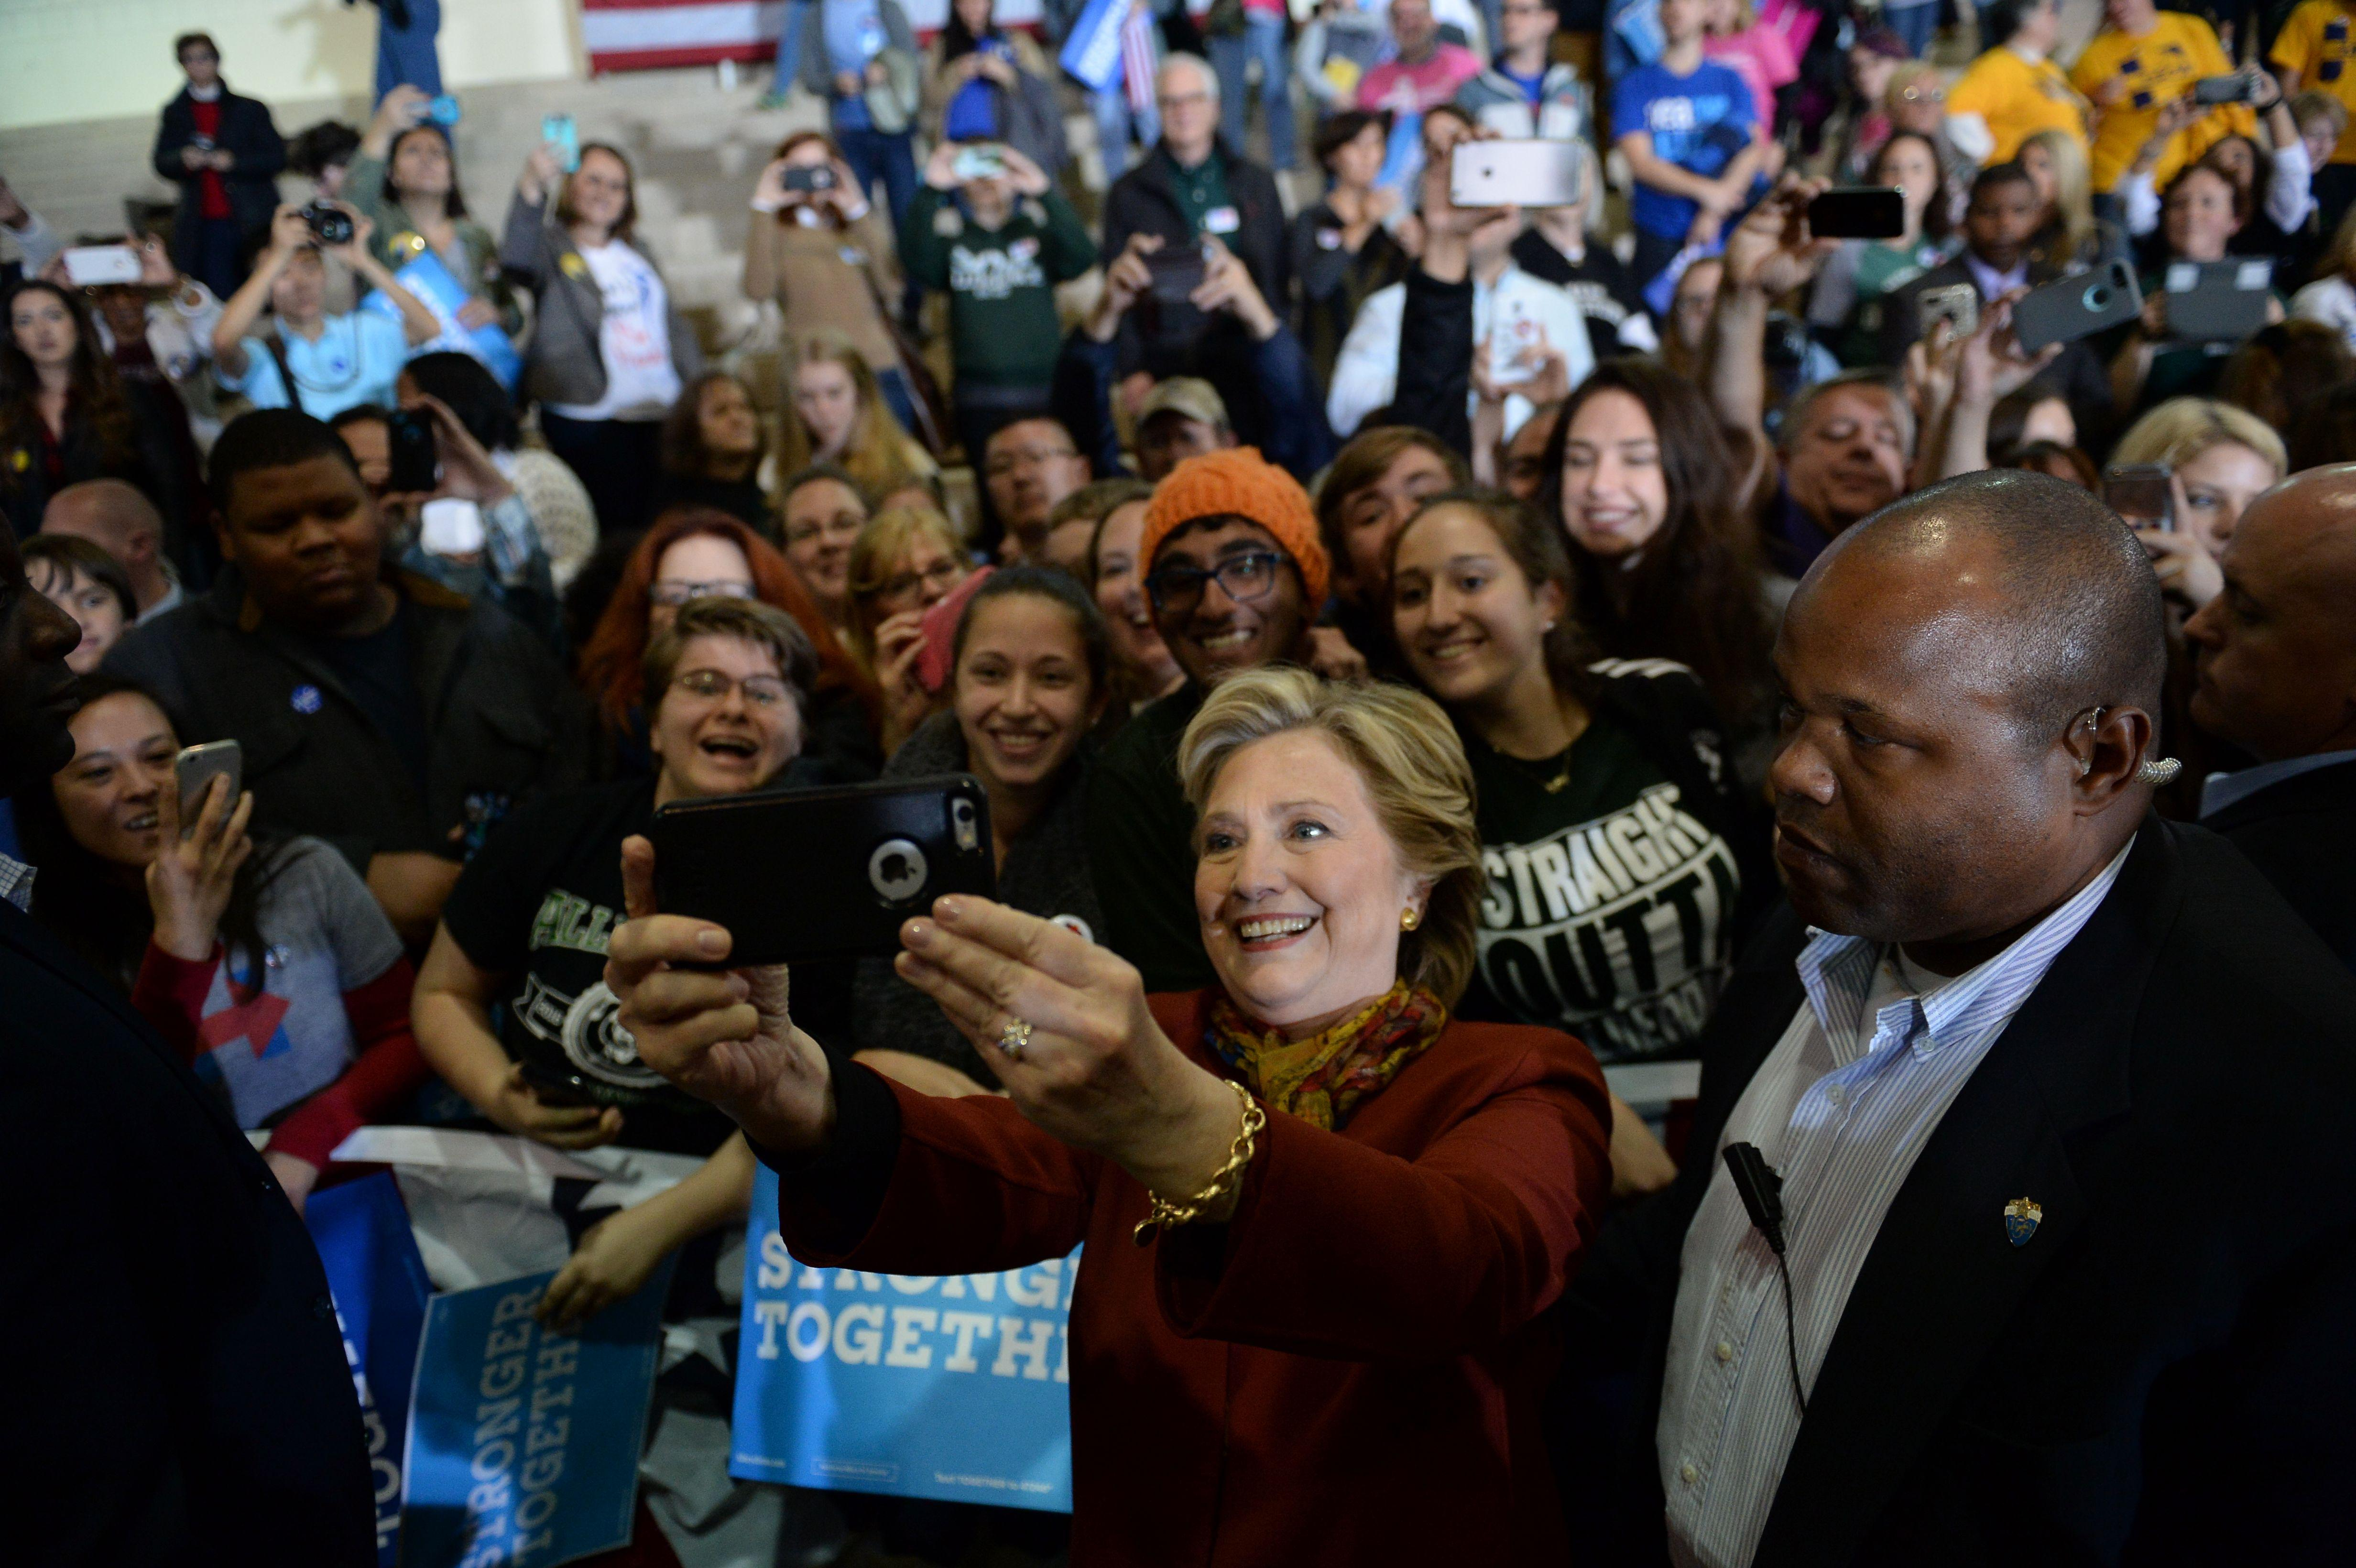 Democratic presidential nominee Hillary Clinton takes a selfie with supporters during a campaign event with her running mate Tim Kaine, October 22, 2016 at Taylor Allderdice High School in Pittsburgh, Pennsylvania. / AFP / Robyn BECK        (Photo credit should read ROBYN BECK/AFP/Getty Images)